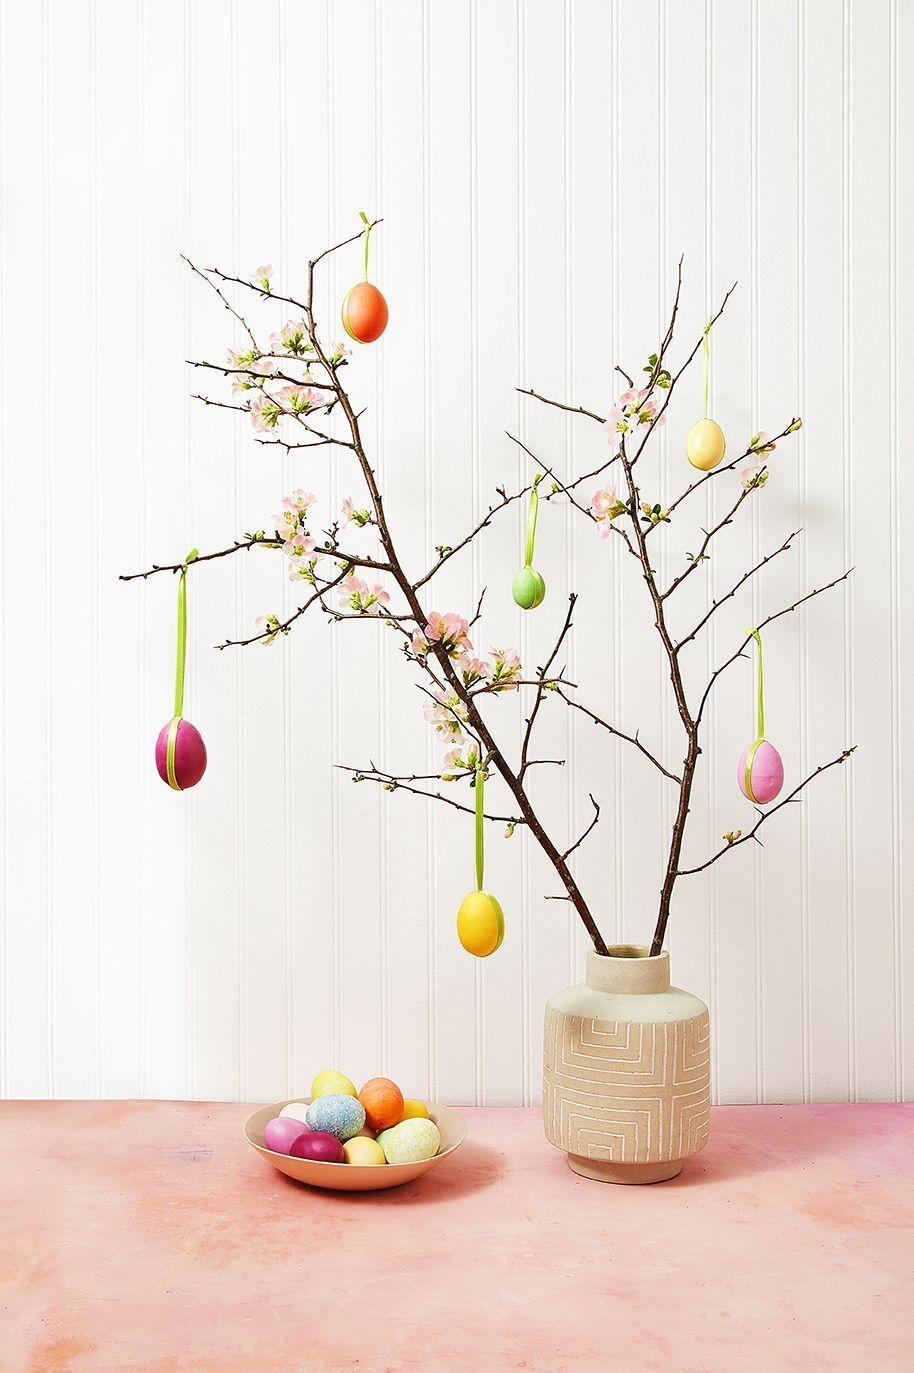 """<p>Christmas isn't the only holiday worthy of a tree. Make a much smaller version of the Christmas classic with this fun display. </p><p><strong><em>Get the tutorial at <a href=""""https://www.goodhousekeeping.com/holidays/easter-ideas/g2217/easter-decorations/?slide=2"""" rel=""""nofollow noopener"""" target=""""_blank"""" data-ylk=""""slk:Good Housekeeping."""" class=""""link rapid-noclick-resp"""">Good Housekeeping. </a></em></strong></p>"""